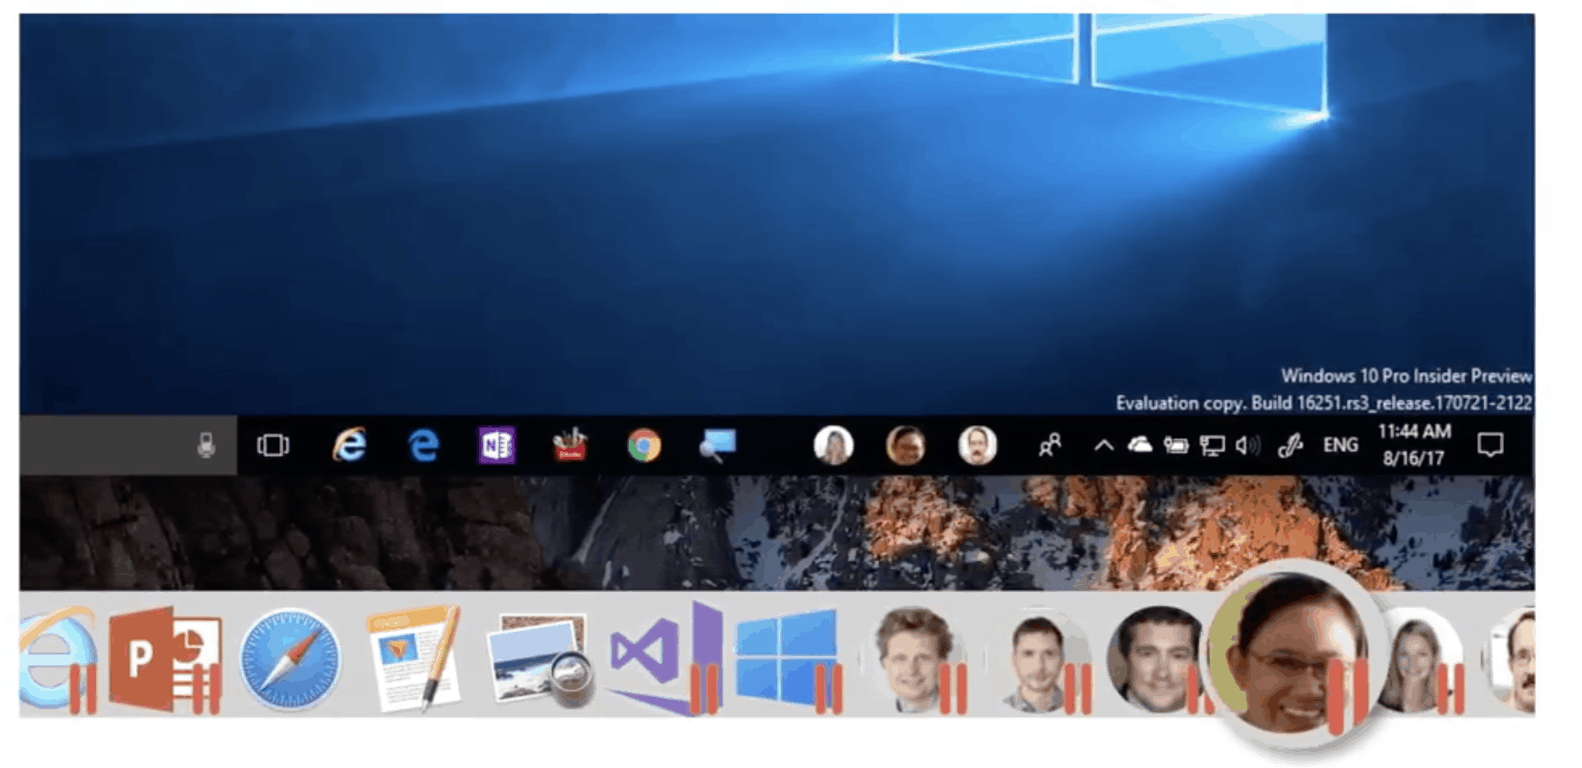 Parallels desktop 13 can turn your mac into a perfect macos/windows 10 hybrid - onmsft. Com - september 6, 2017